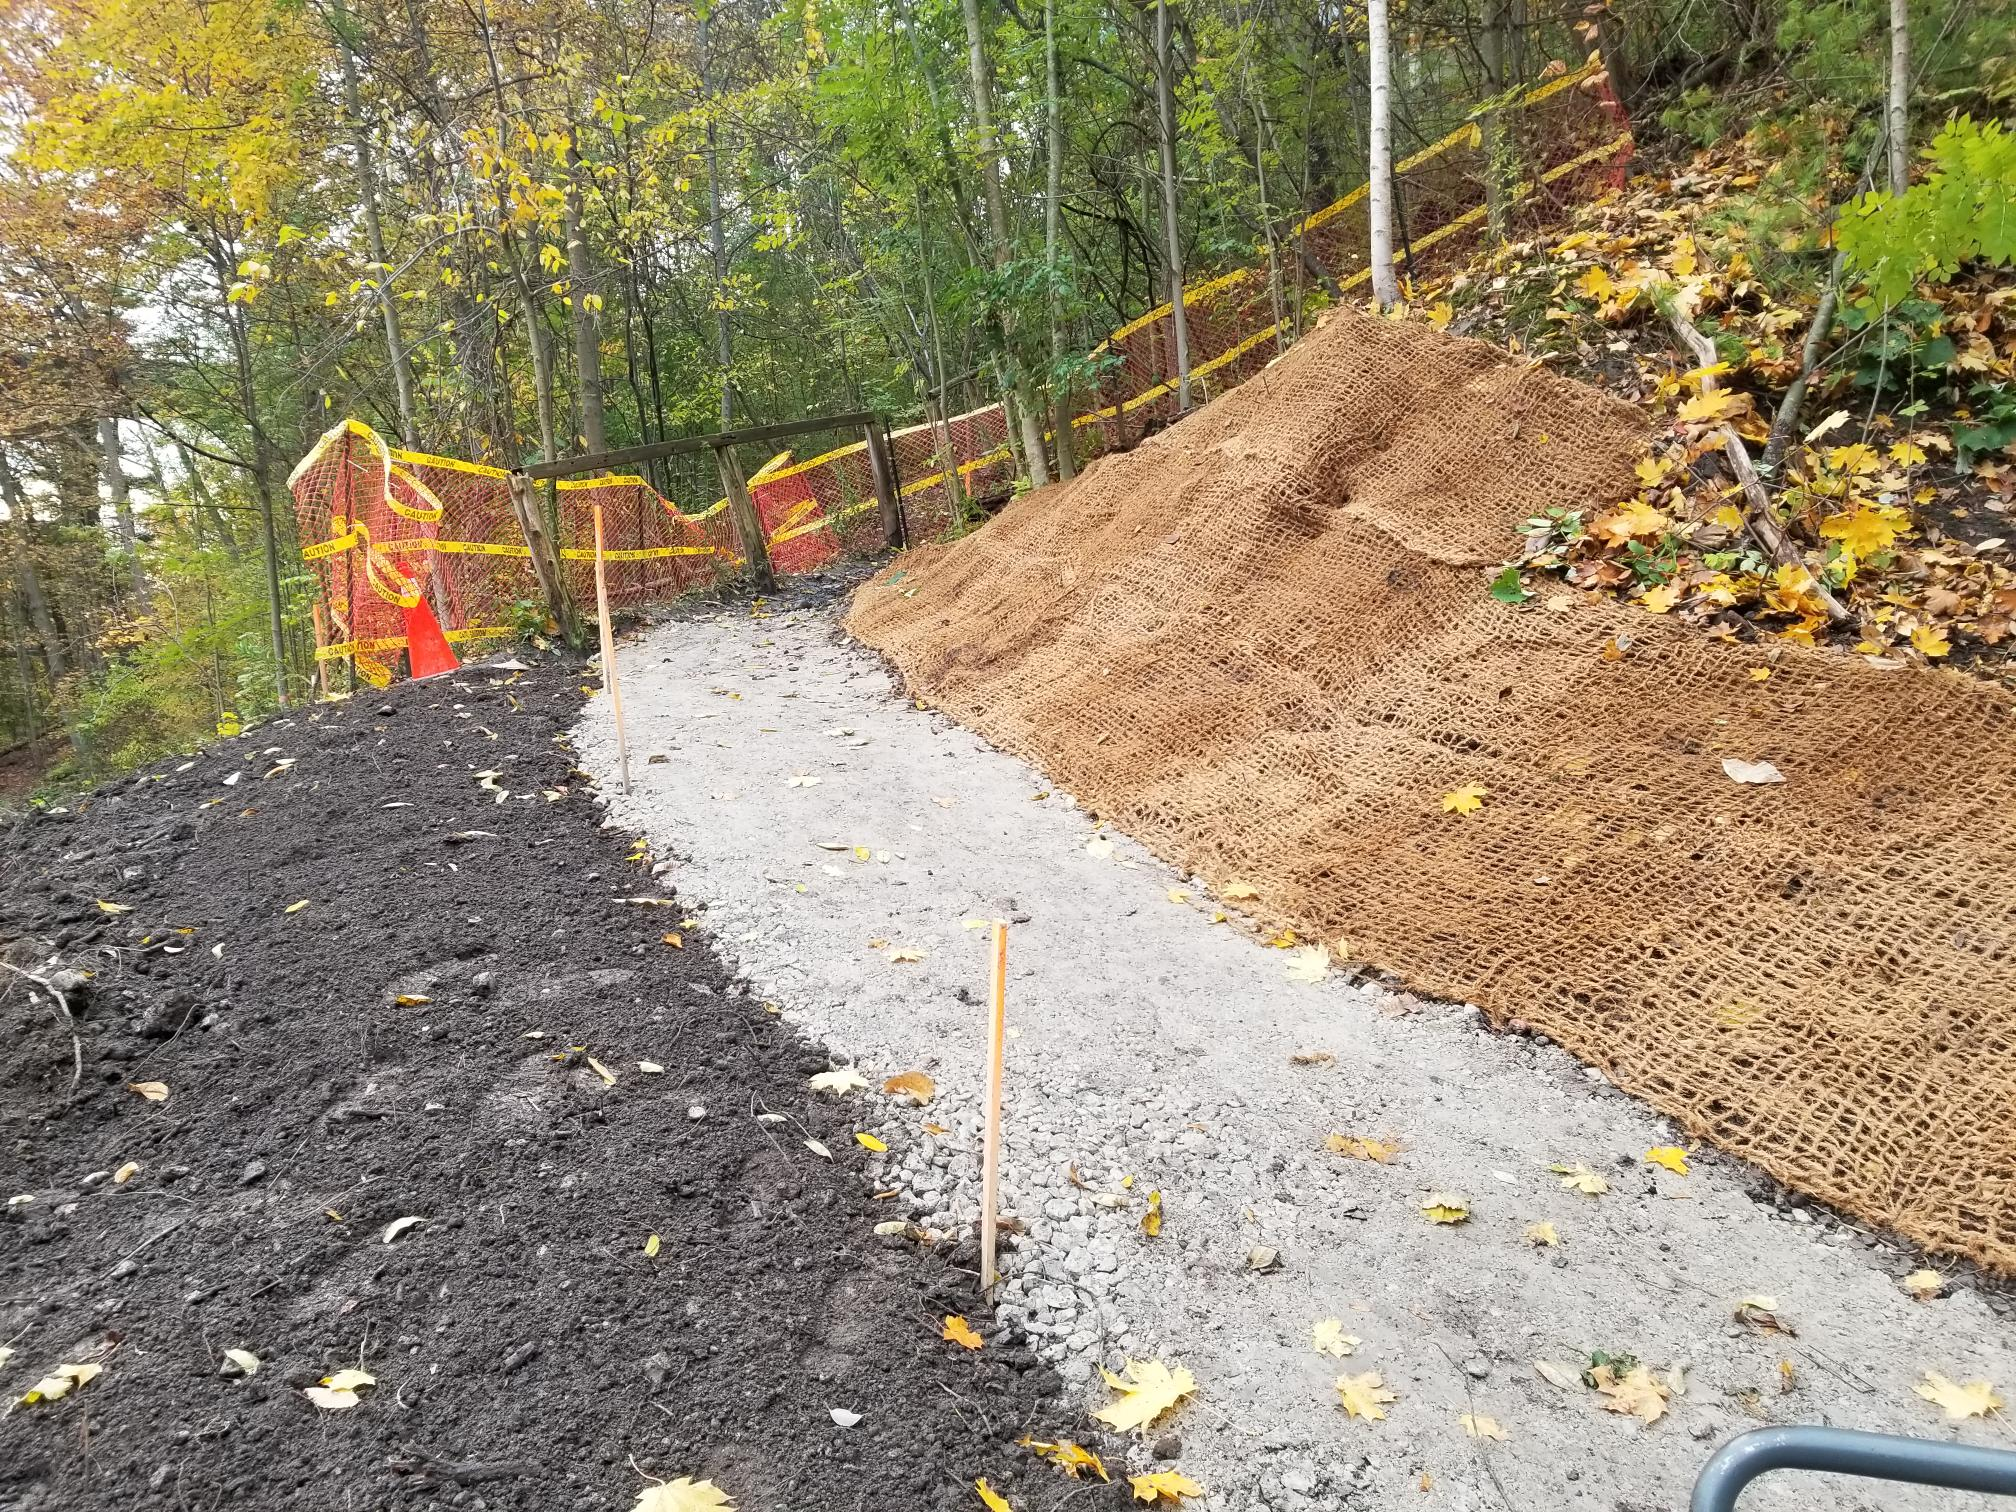 Restored pedestrian trail located along the west bank of Yellow Creek below Summerhill Gardens. Source: TRCA, 2019.